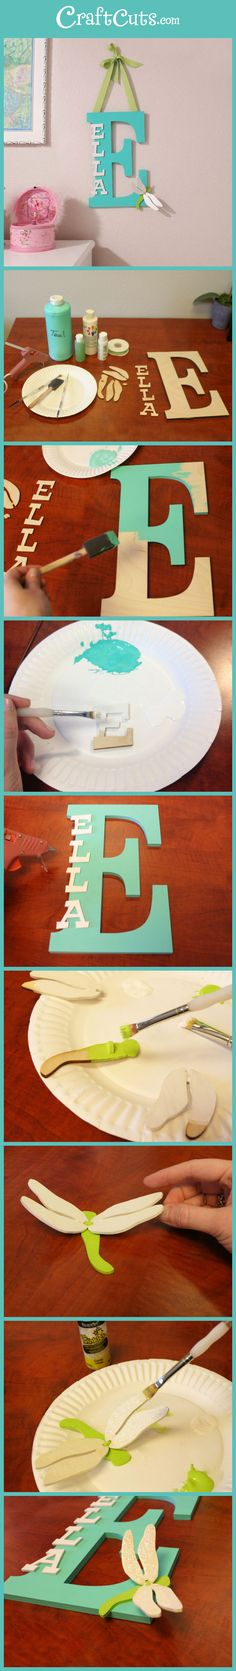 Turn+plain+wood+lettering+into+this+whimsical+monogram+for+your+kid's+room+|+CraftCuts.com